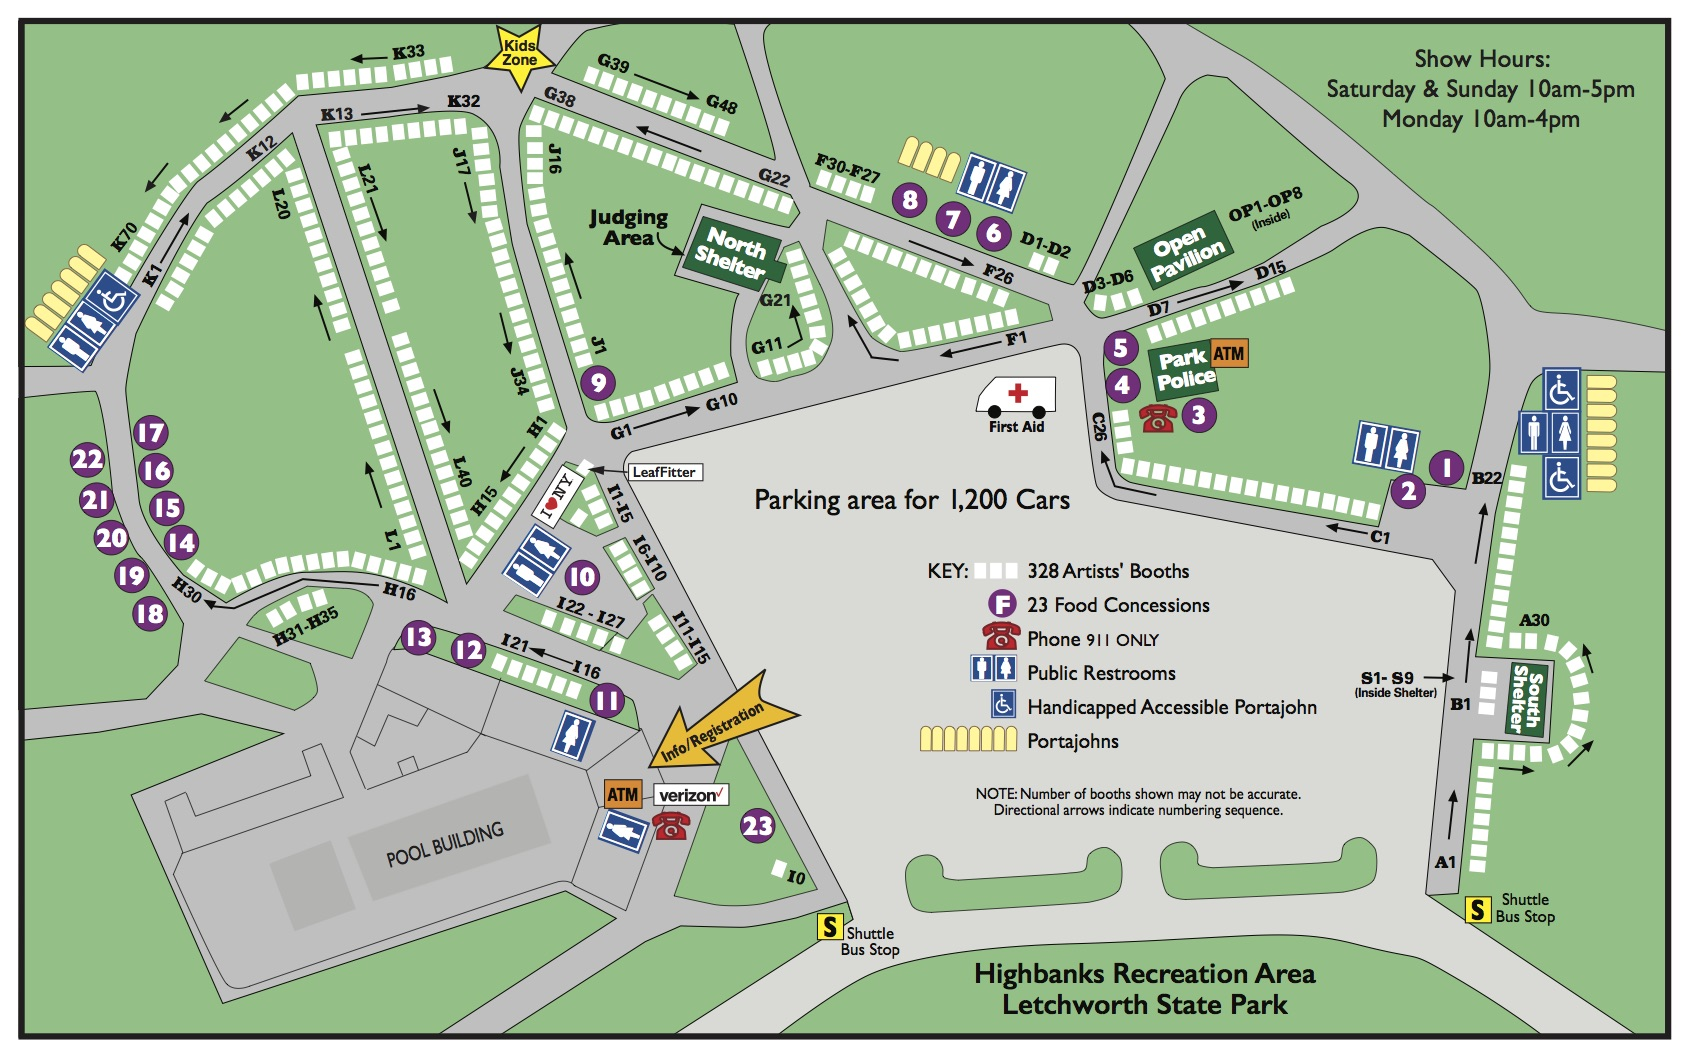 Show A Map Arts Council for Wyoming County : Letchworth Arts and Crafts Show  Show A Map